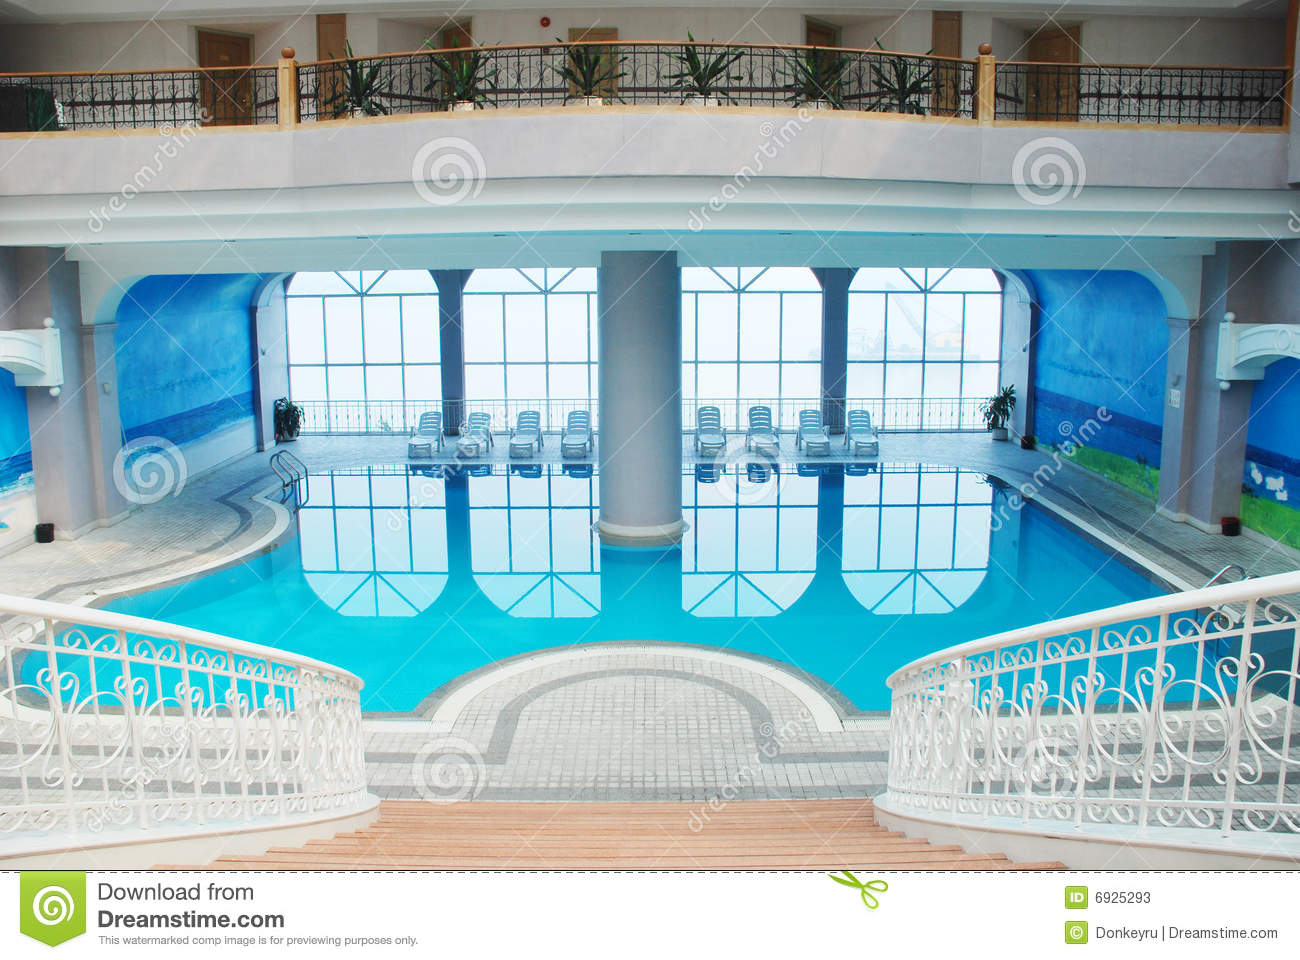 La piscine d 39 int rieur image stock image du natation for Prix piscine interieur